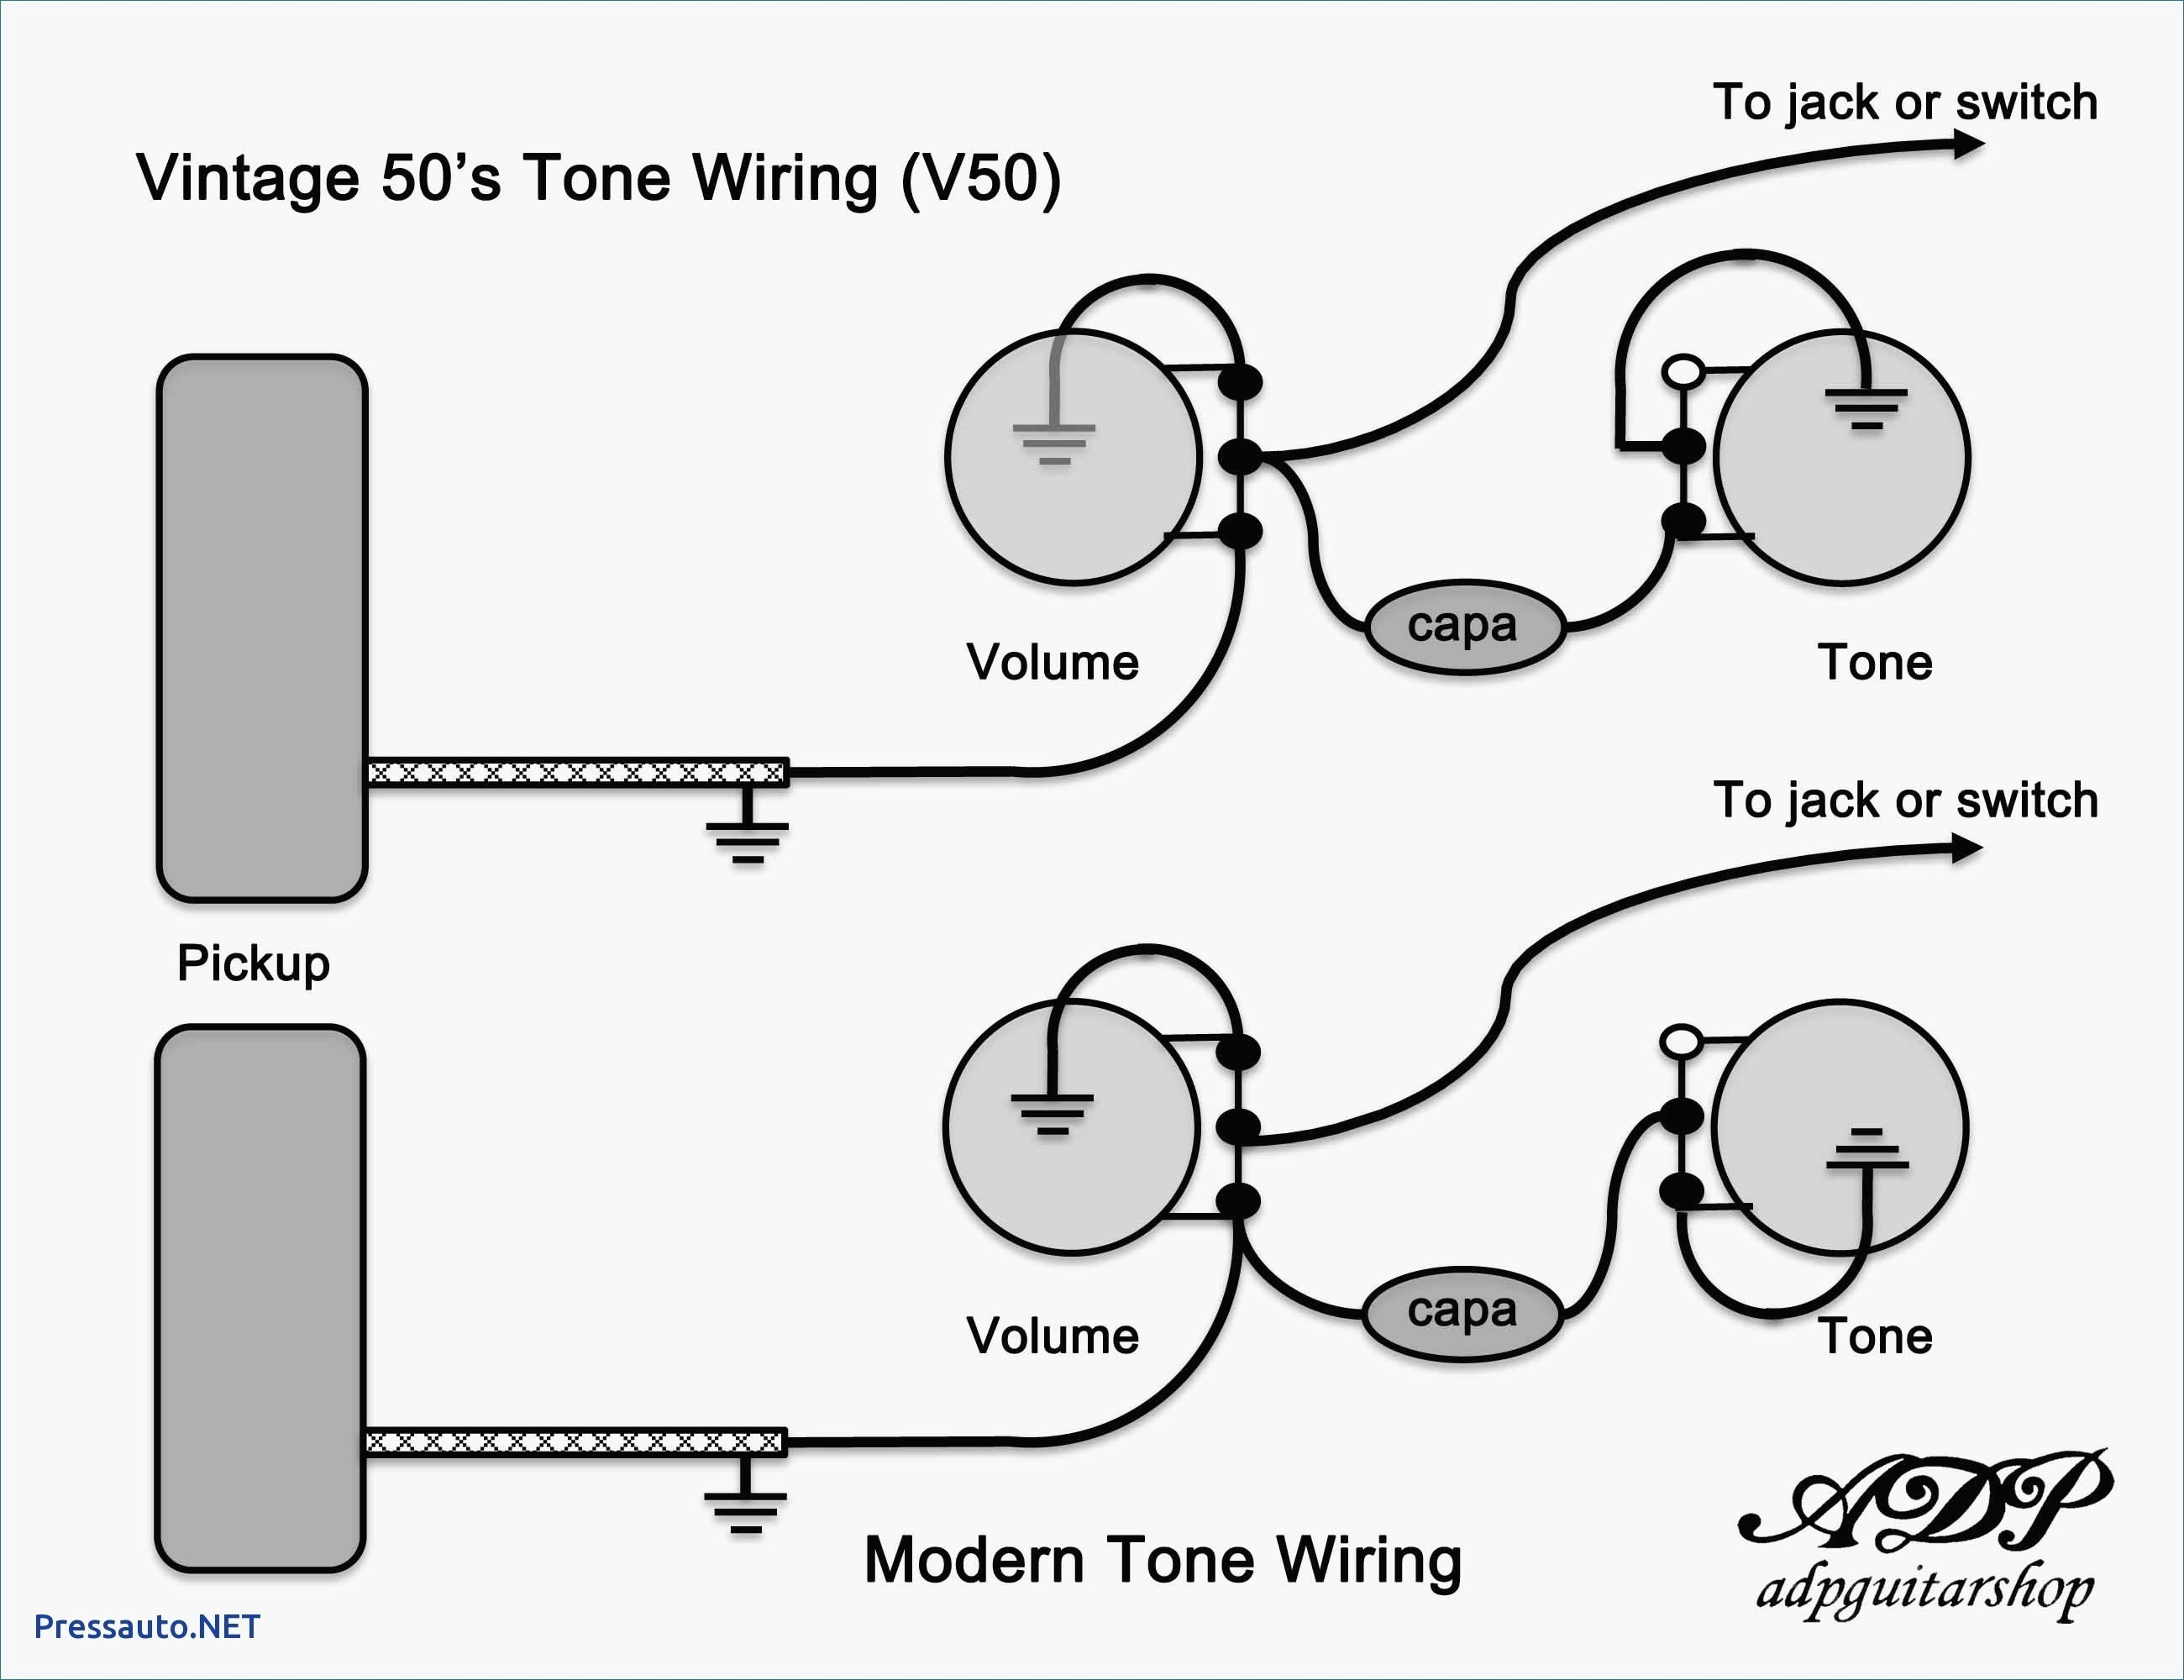 Les Paul 50s Wiring Diagram Gibson Les Paul Vintage Wiring Diagram Reference Gibson Les Paul Of Les Paul 50s Wiring Diagram